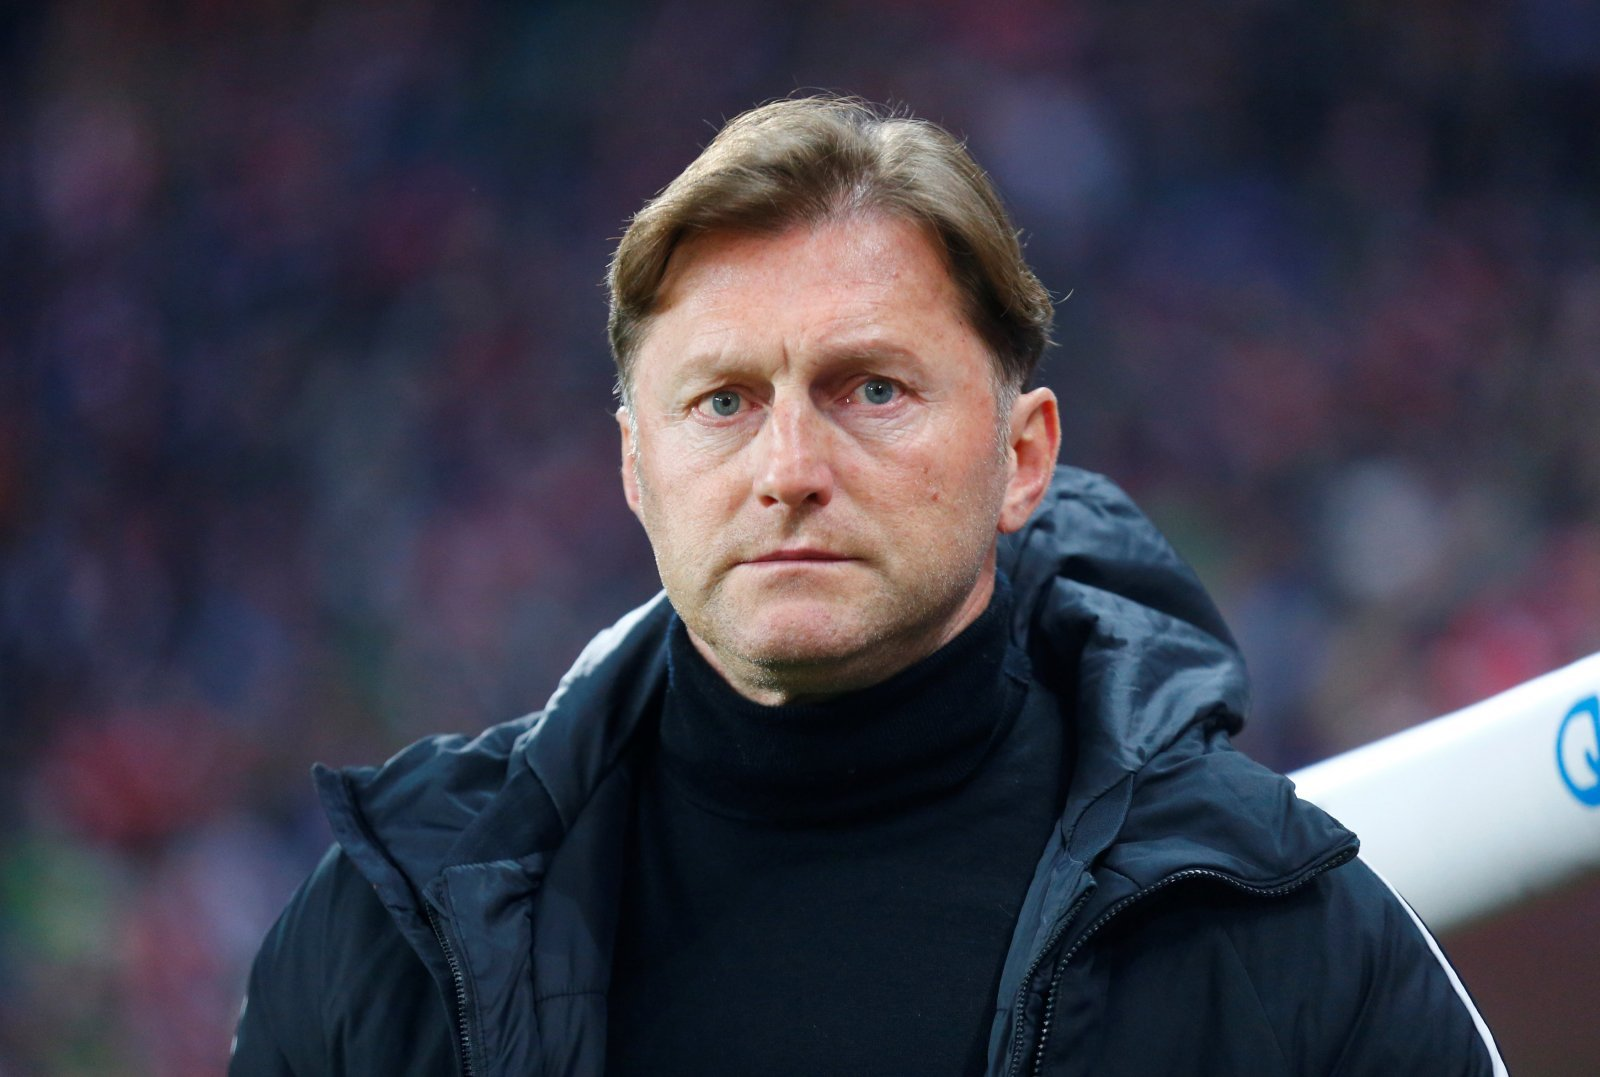 Ralph Hasenhüttl would suit Southampton perfectly